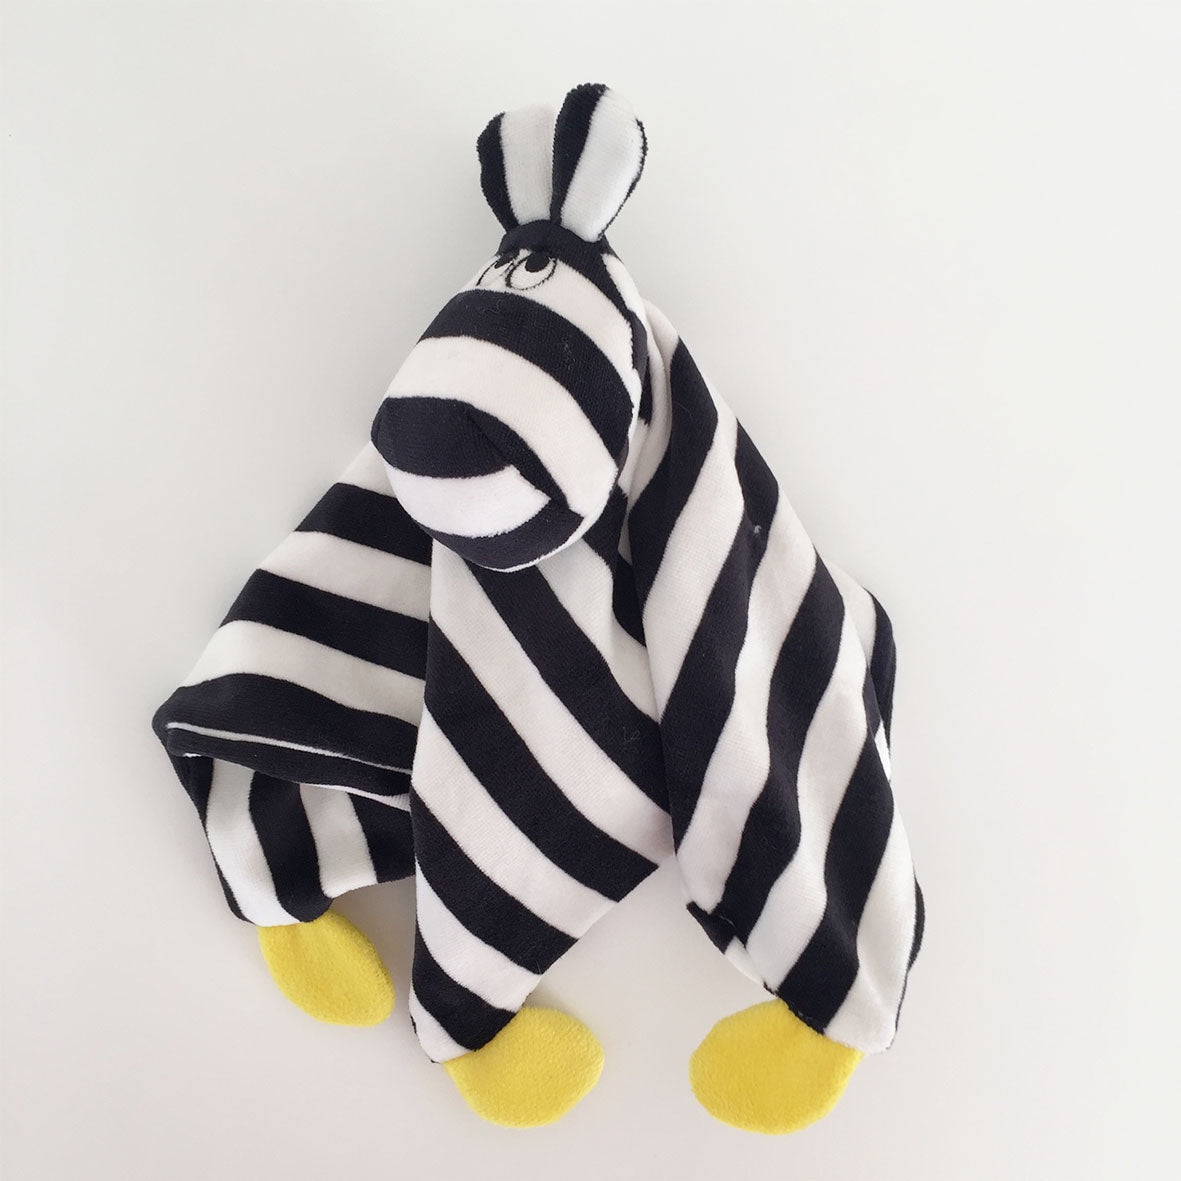 IKEA Klappa Comfort Blanket with Soft Toy